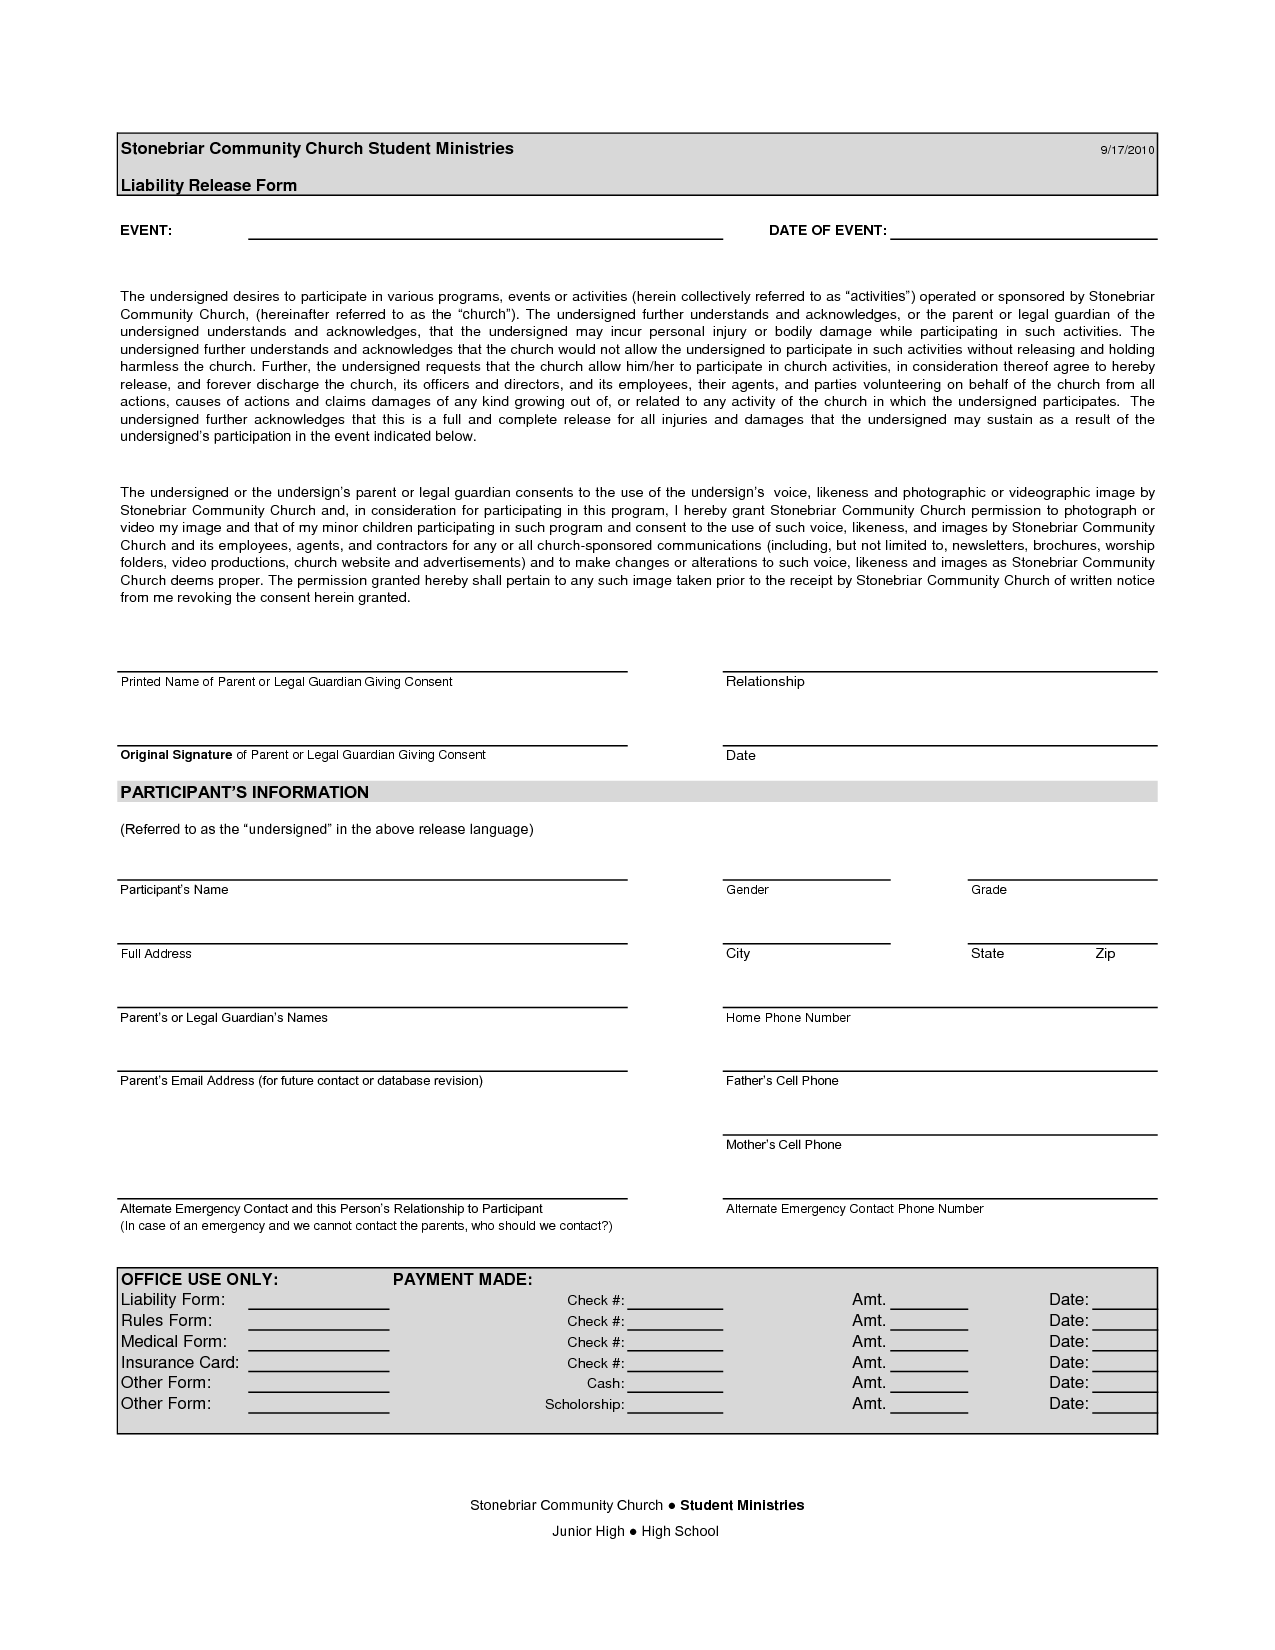 Free Printable Liability Form Form Generic Sample Printable Legal Forms For Attorney Lawyer Legal Forms Free Basic Templates Real Estate Forms